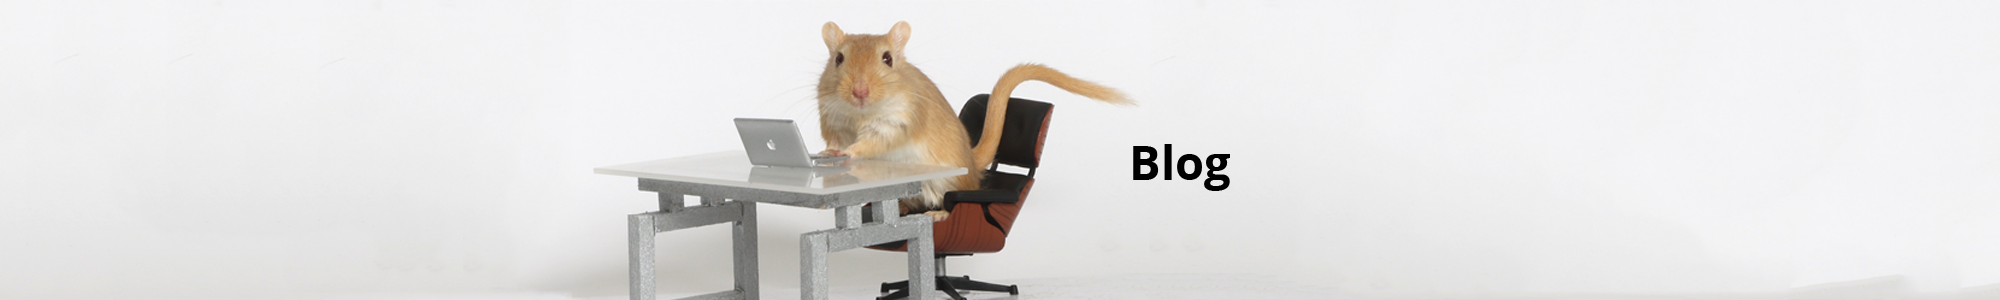 Gerbil Meets Mouse Publishing Header